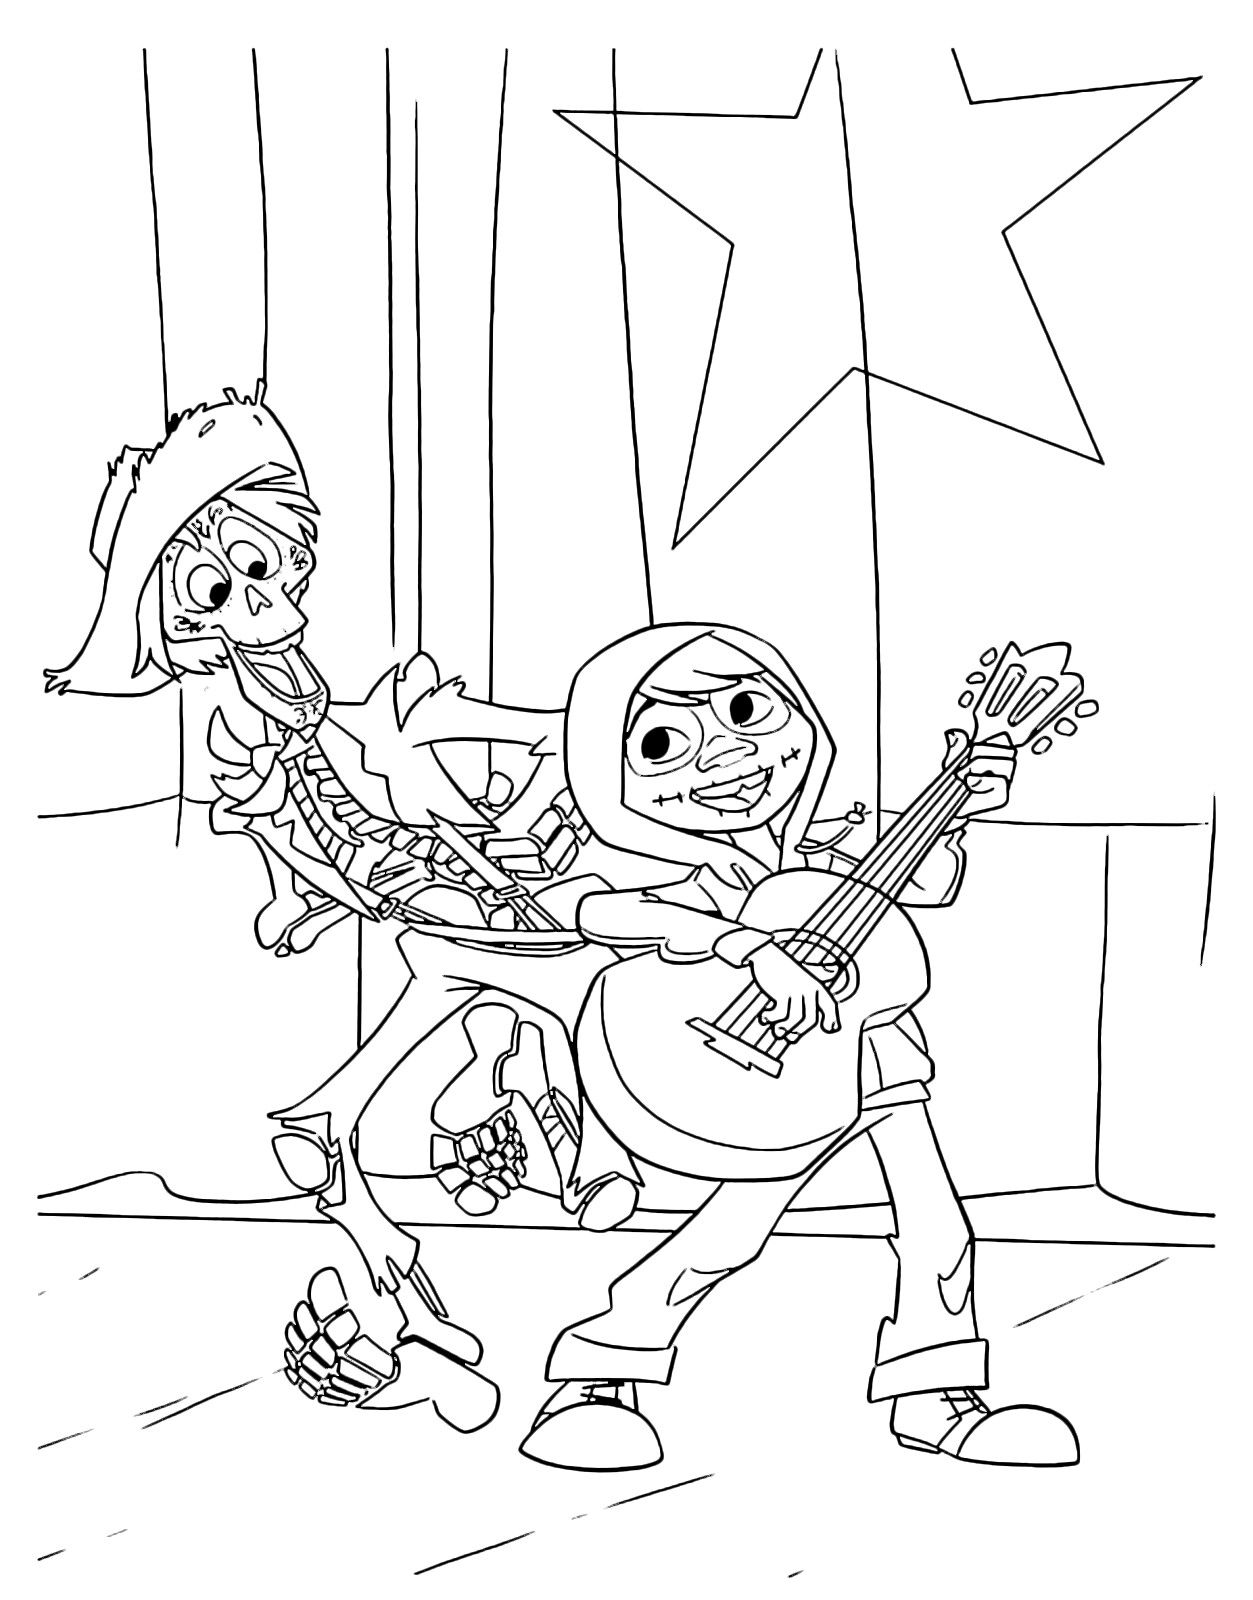 Pin by FunCraft DIY on COLORING PAGES COCO | Disney ...